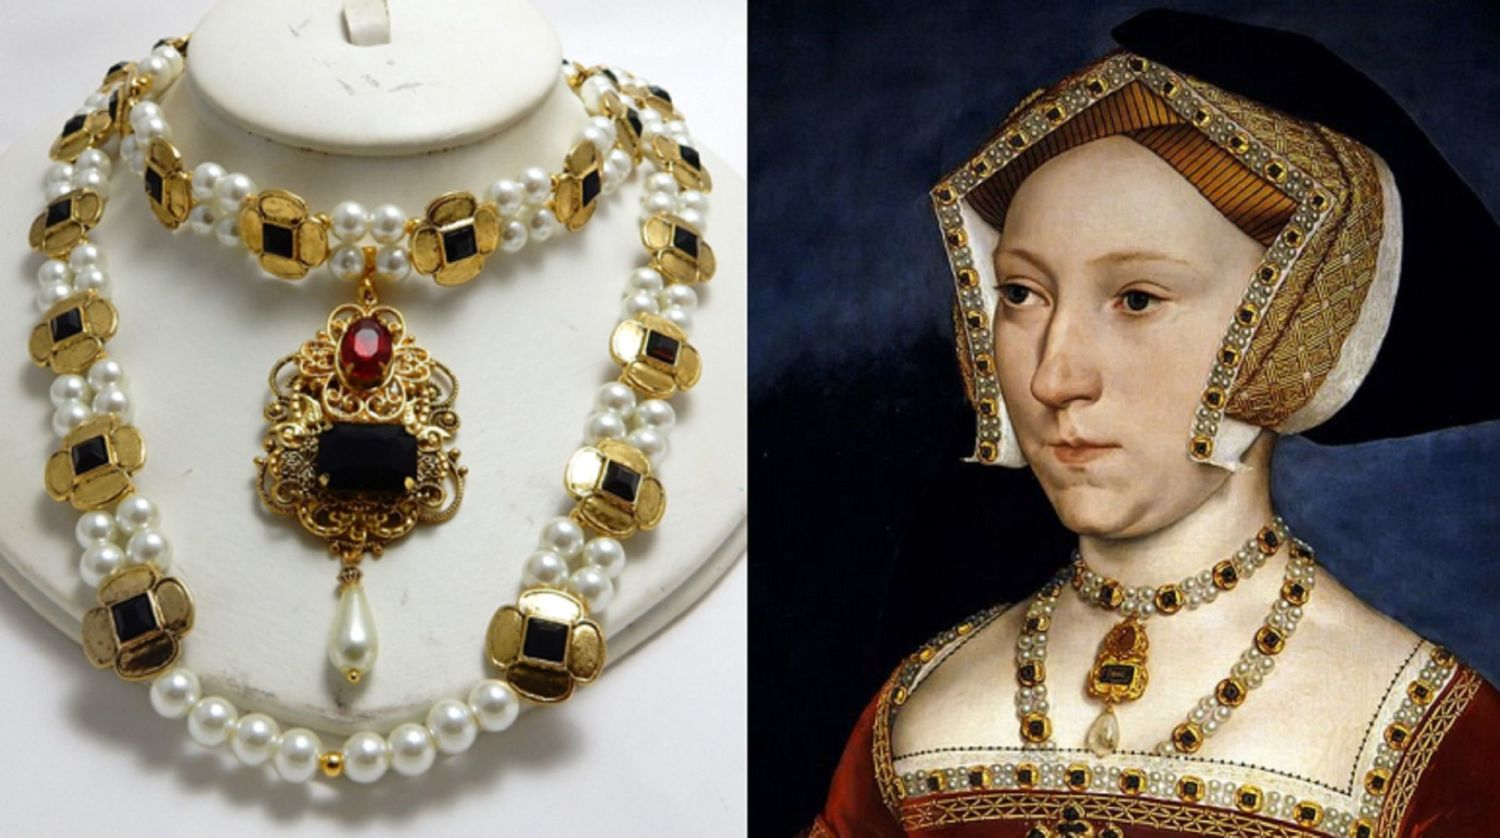 Jane seymour new necklace double carcanet compare.png1